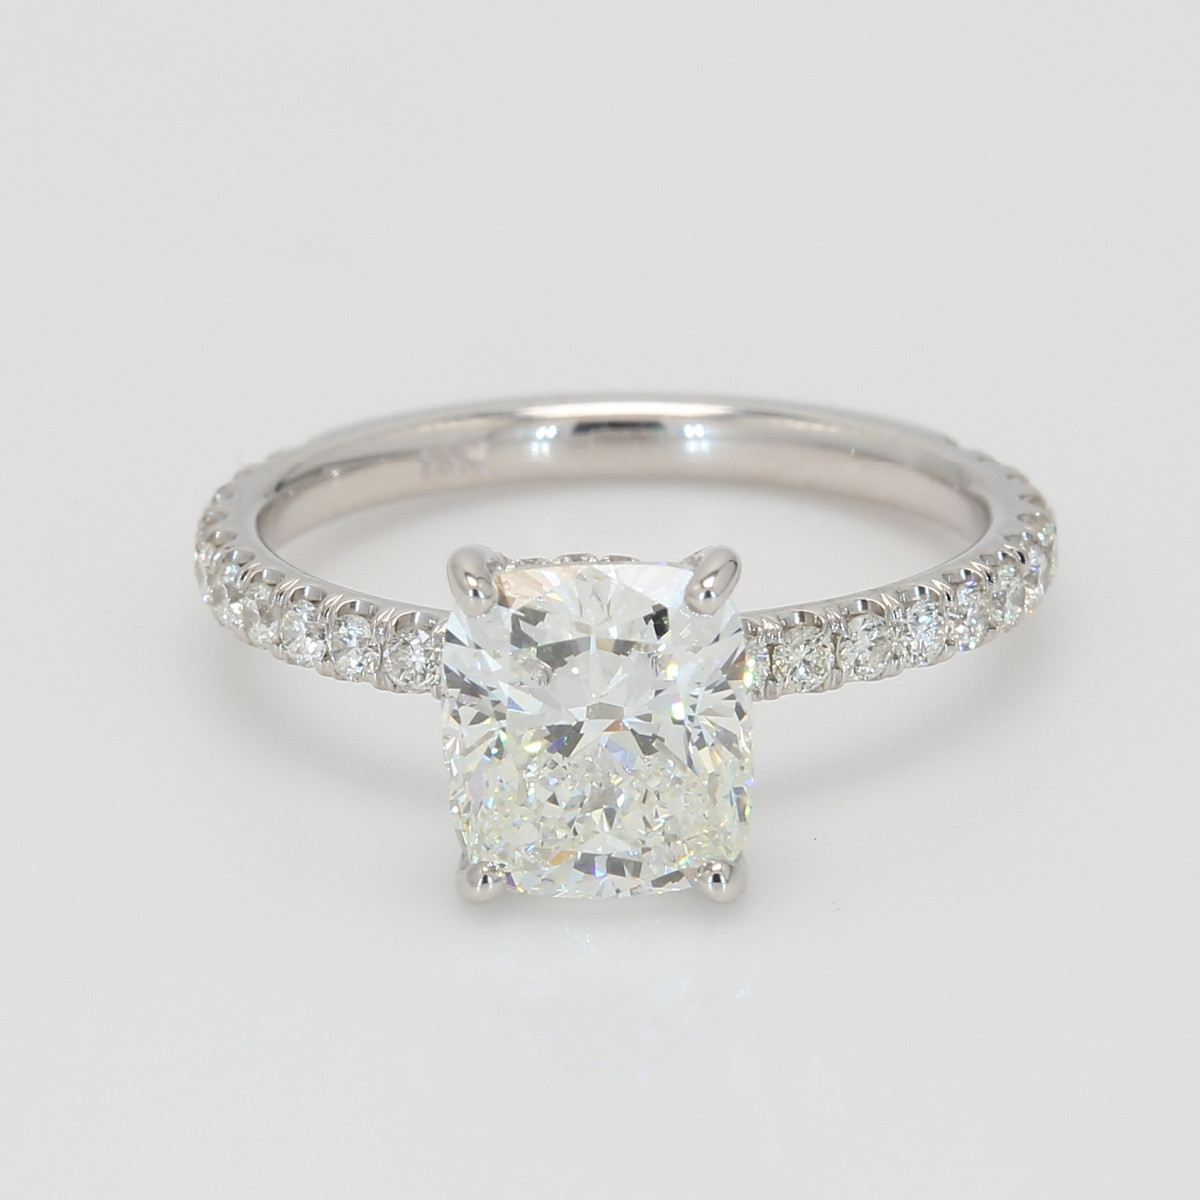 1.82 Carat Cushion Cut Diamond Oliva Collection Engagement Ring